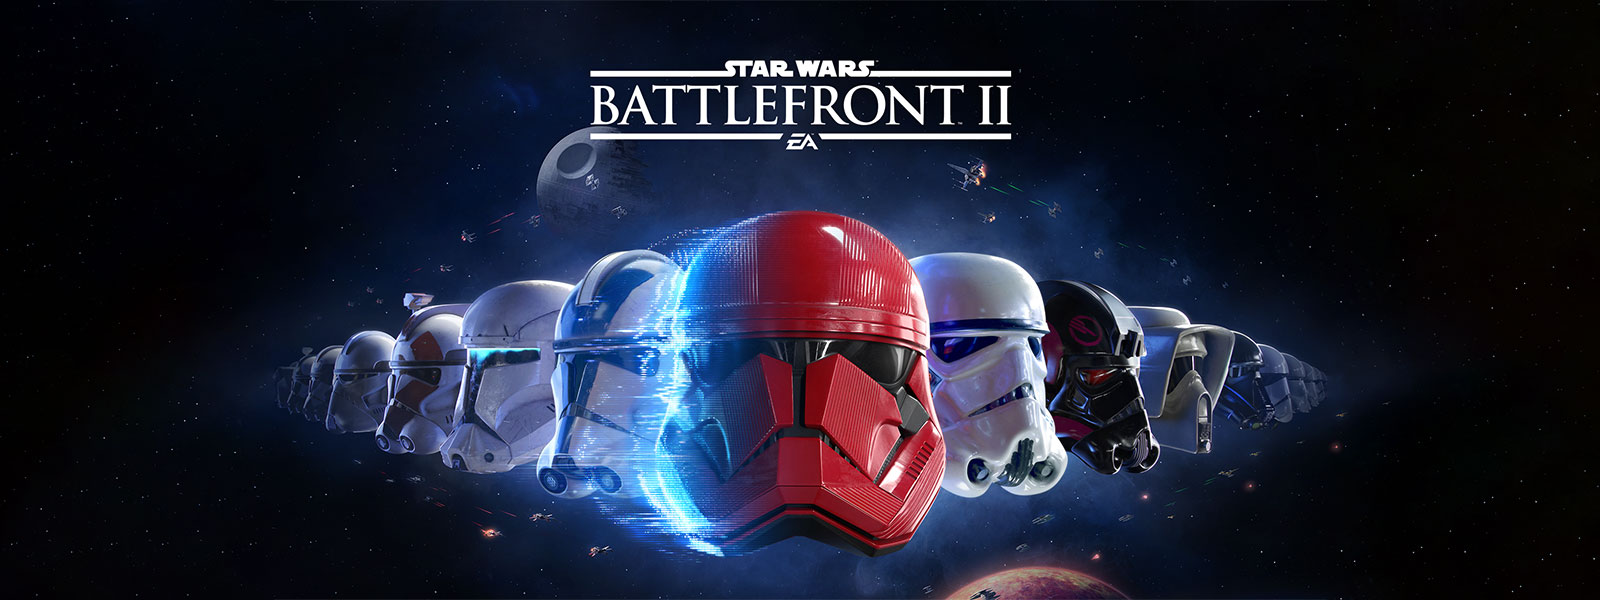 Star Wars Battlefront II, lineup of many different stormtrooper masks with the galaxy in the background